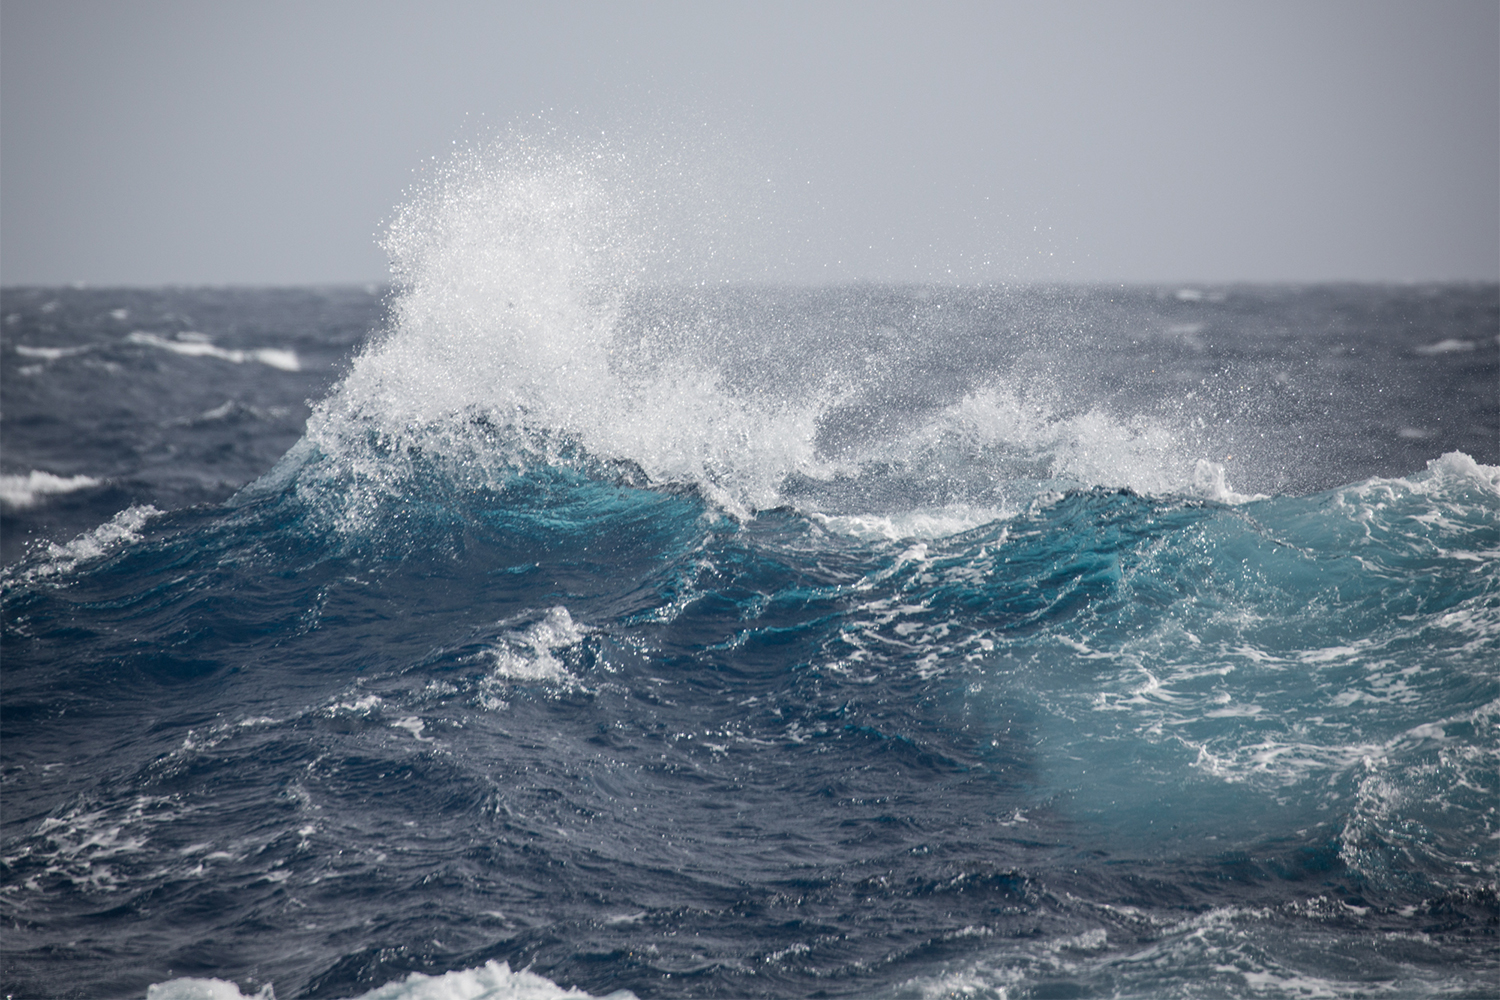 Rough waters in the Drake Passage. Photo: Acacia Johnson